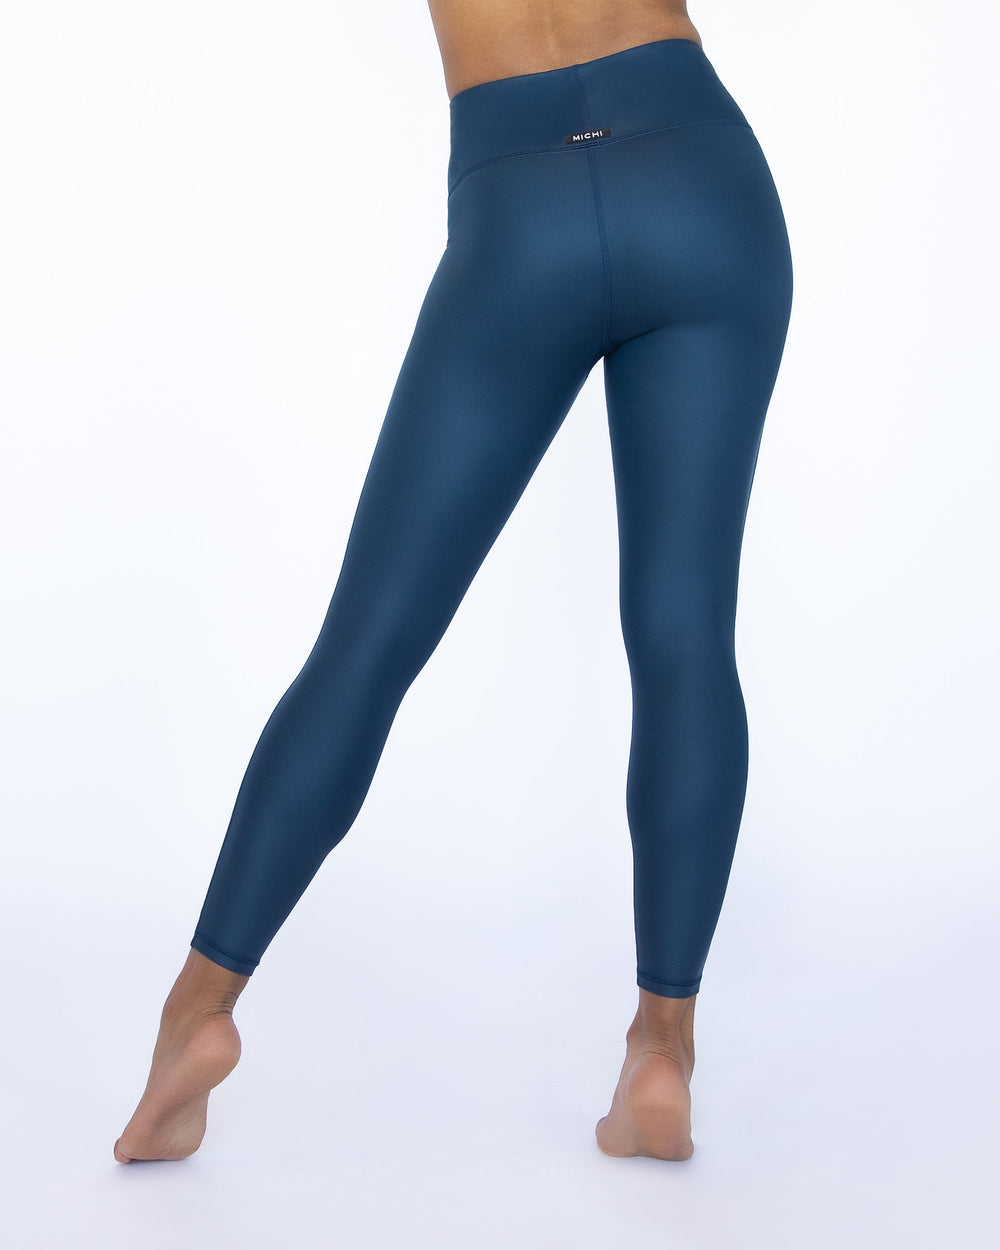 Instinct Gloss Legging - Ink